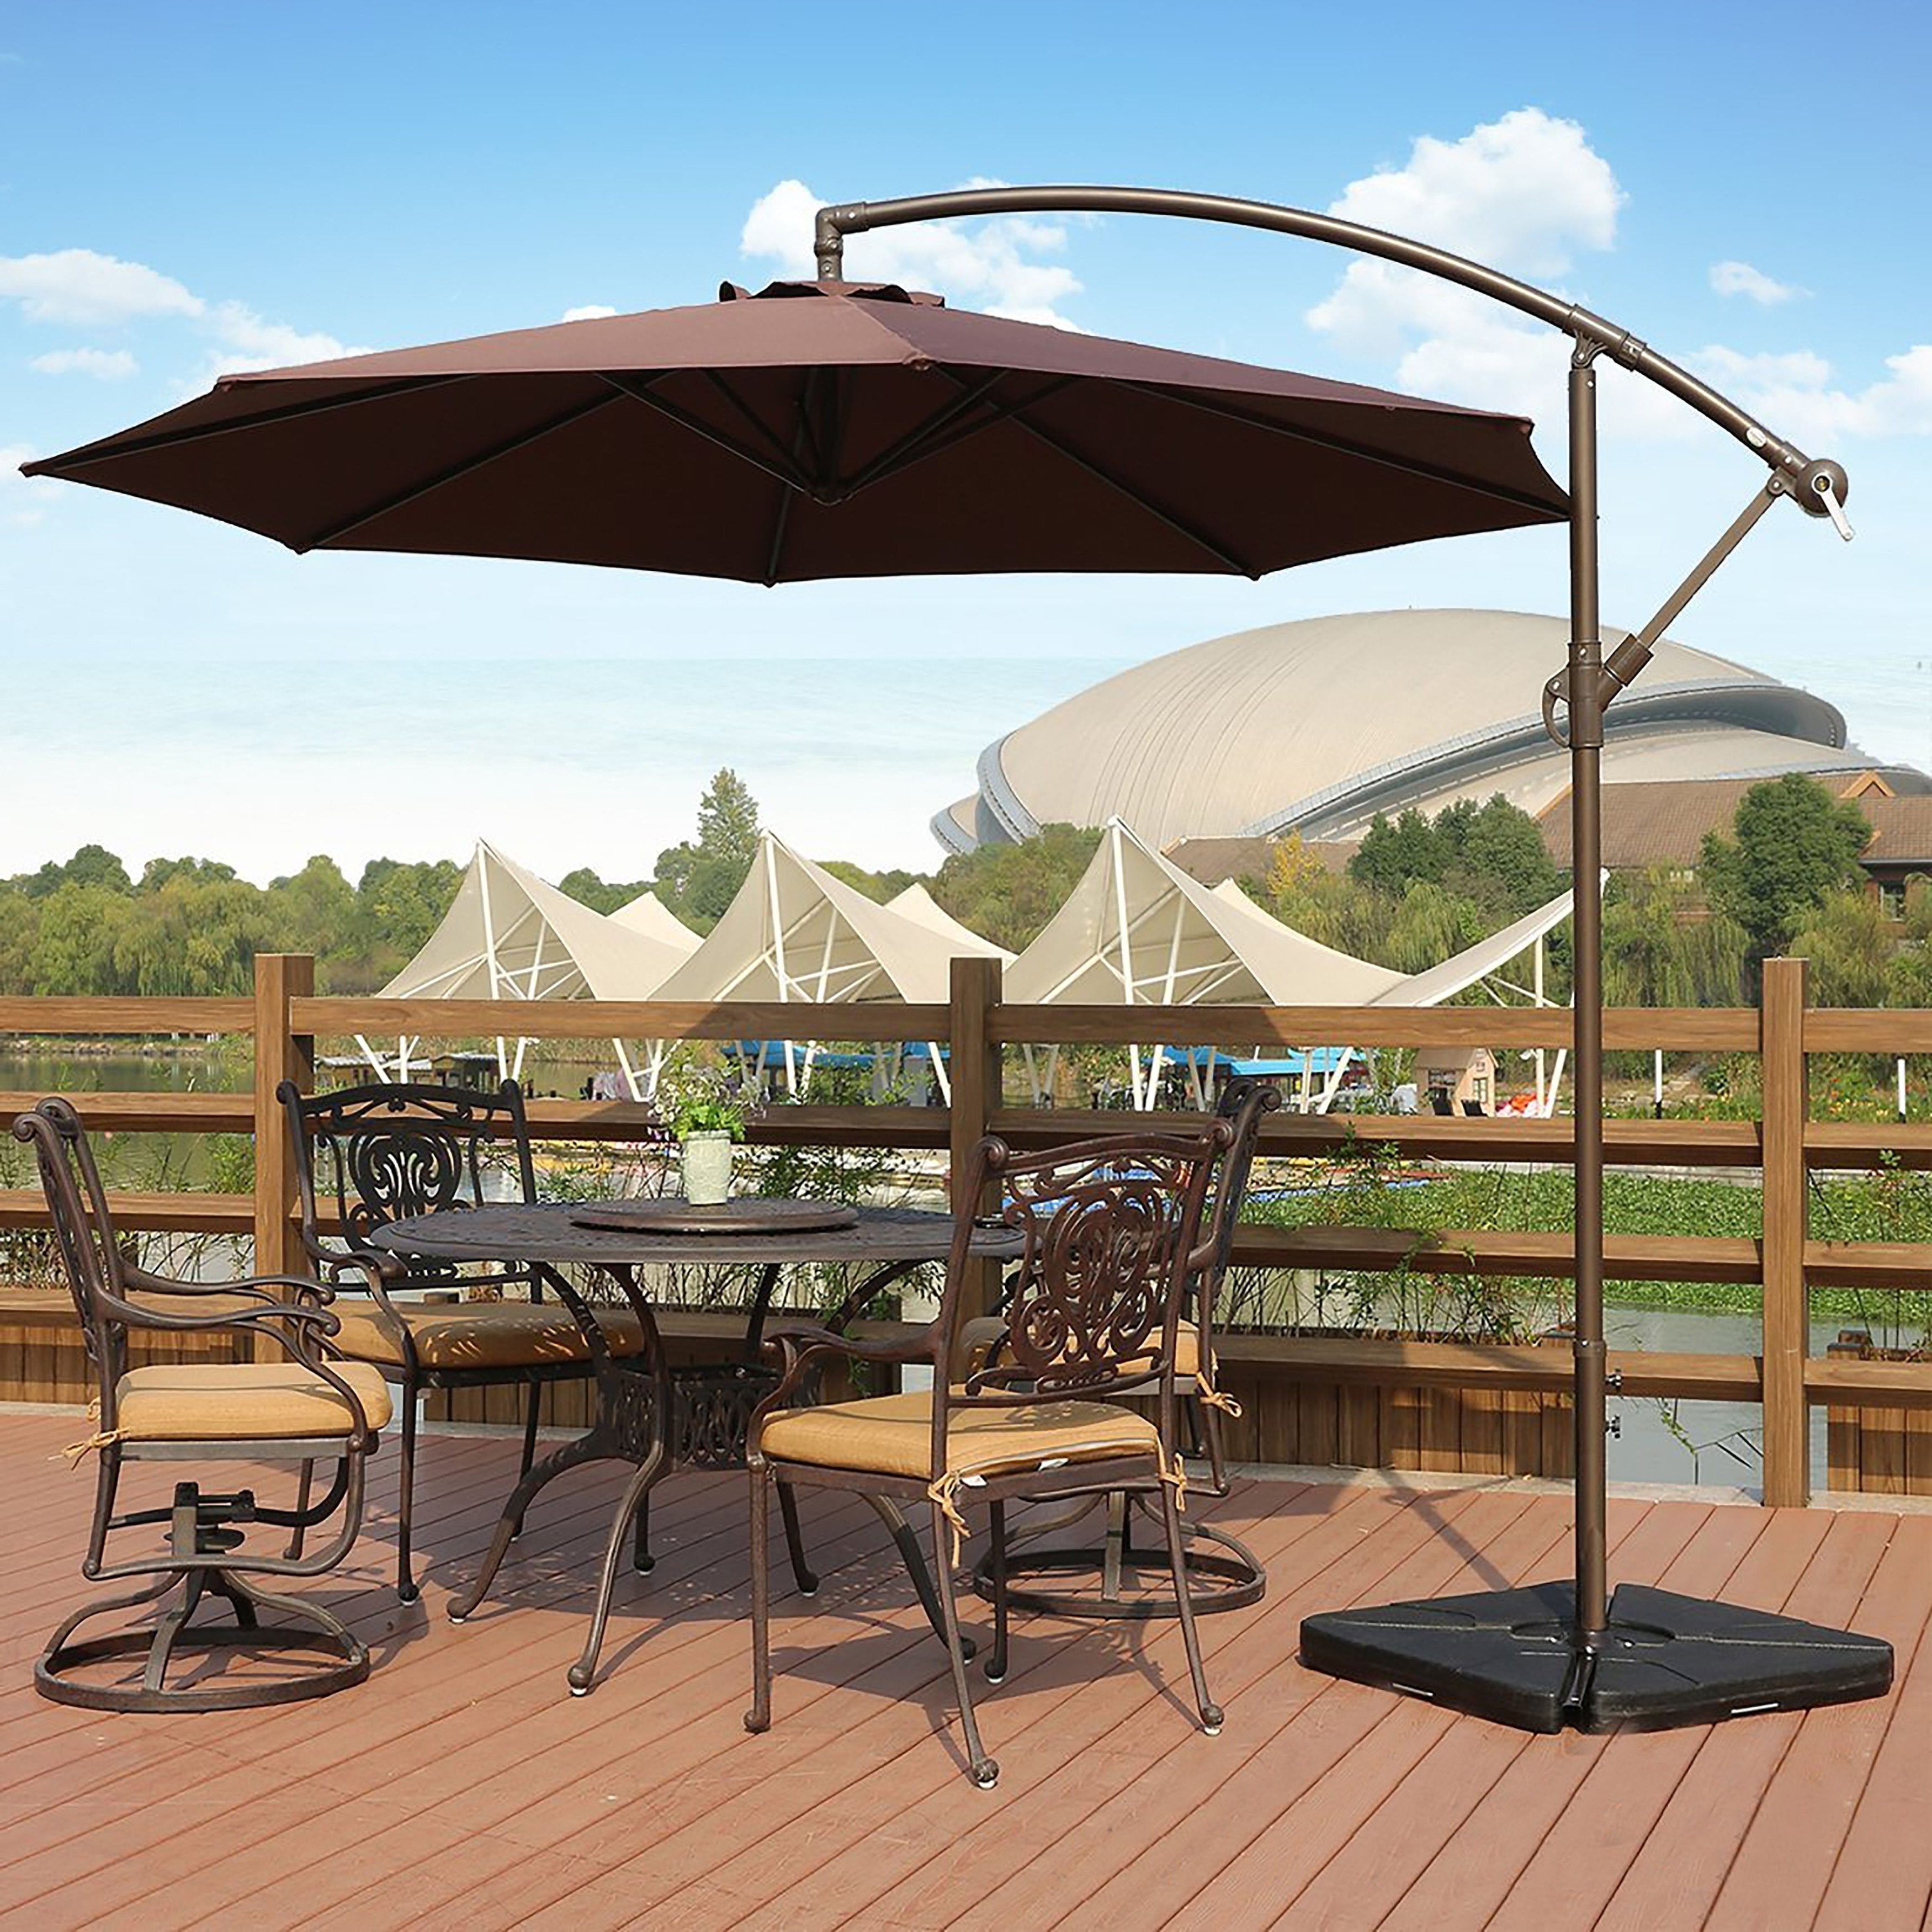 Westin Outdoor Weller 10 Ft Offset Cantilever Hanging Patio Umbrella Intended For Newest Hanging Offset Patio Umbrellas (View 19 of 20)